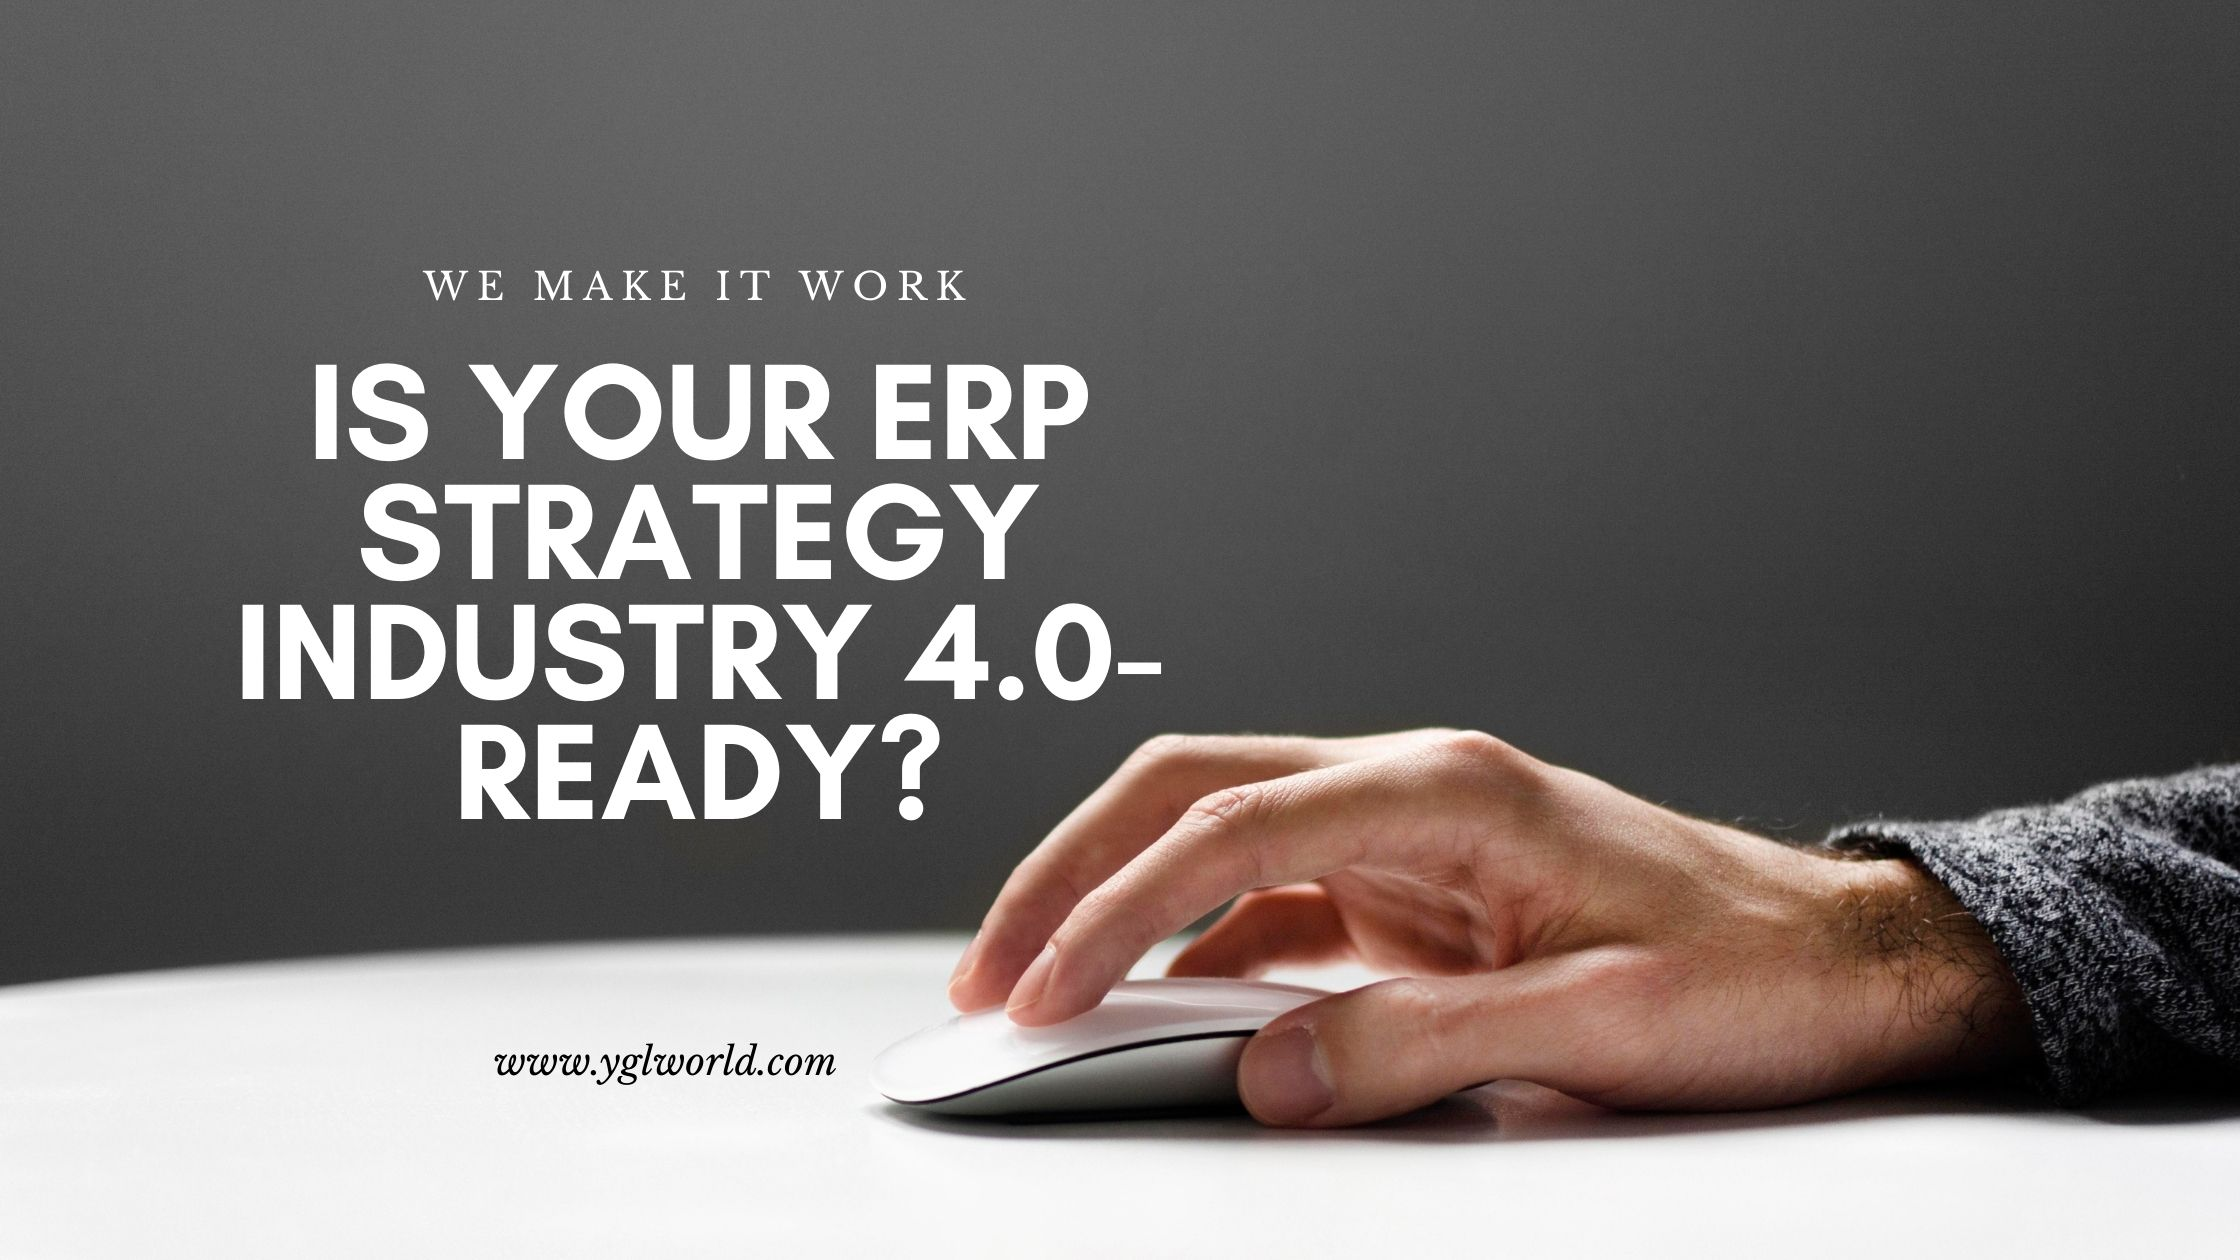 Is Your ERP Strategy Industry 4.0-ready?